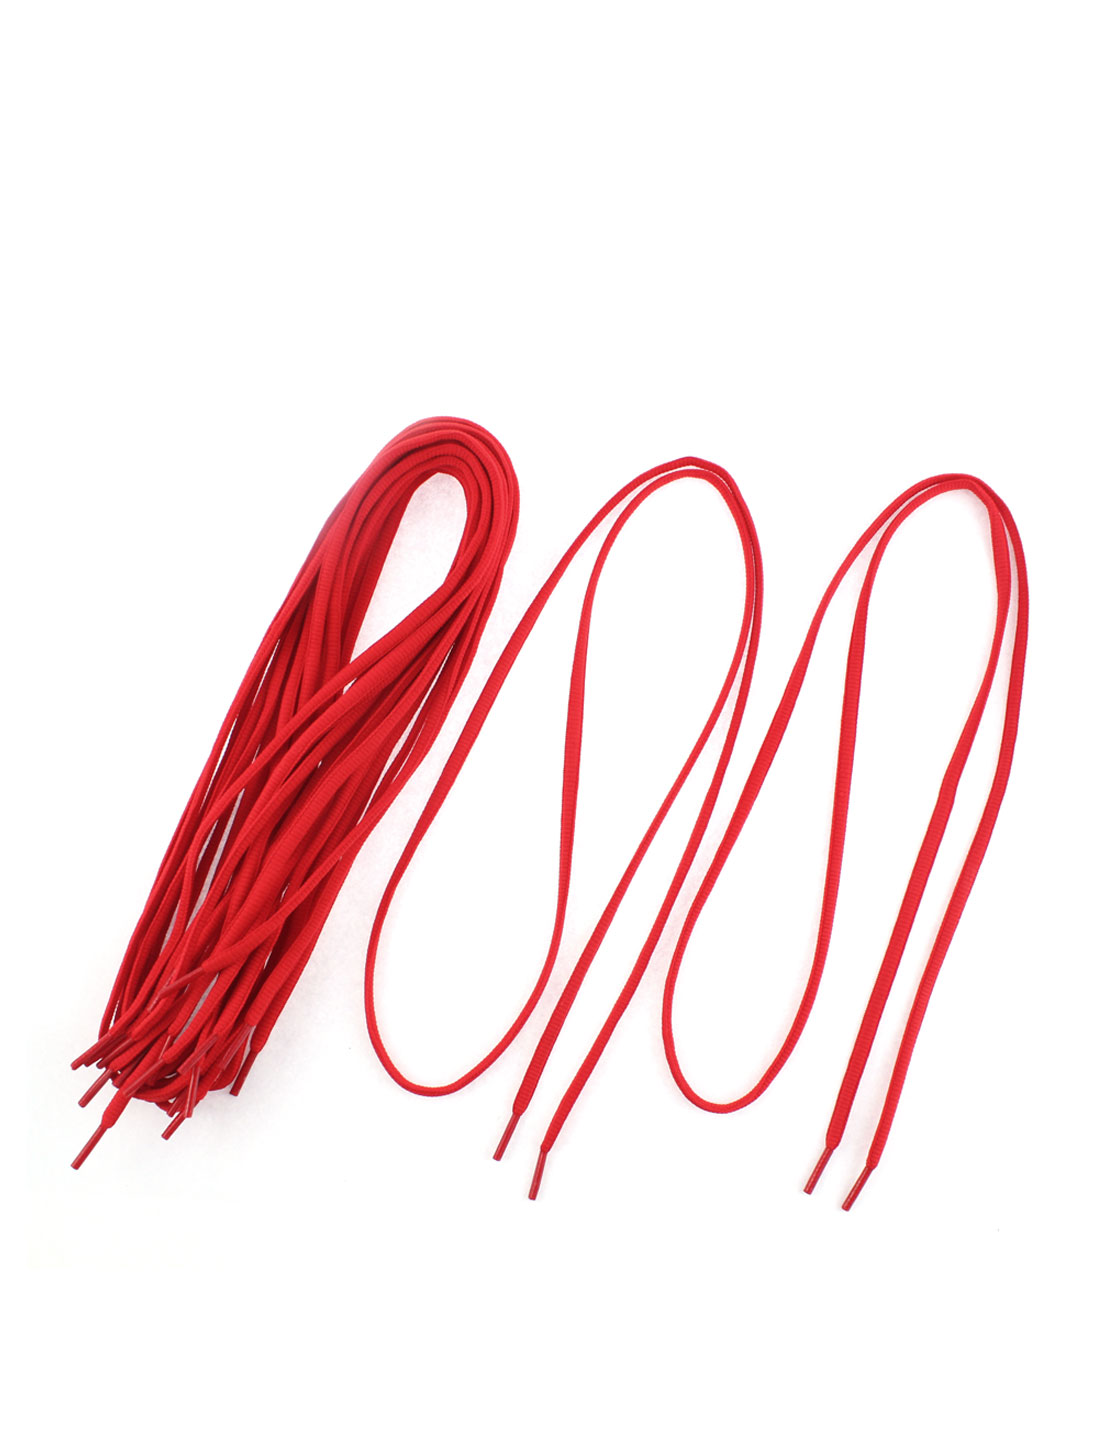 Skateboard Hiking Sneakers Shoes Shoelaces Red 5 Pairs